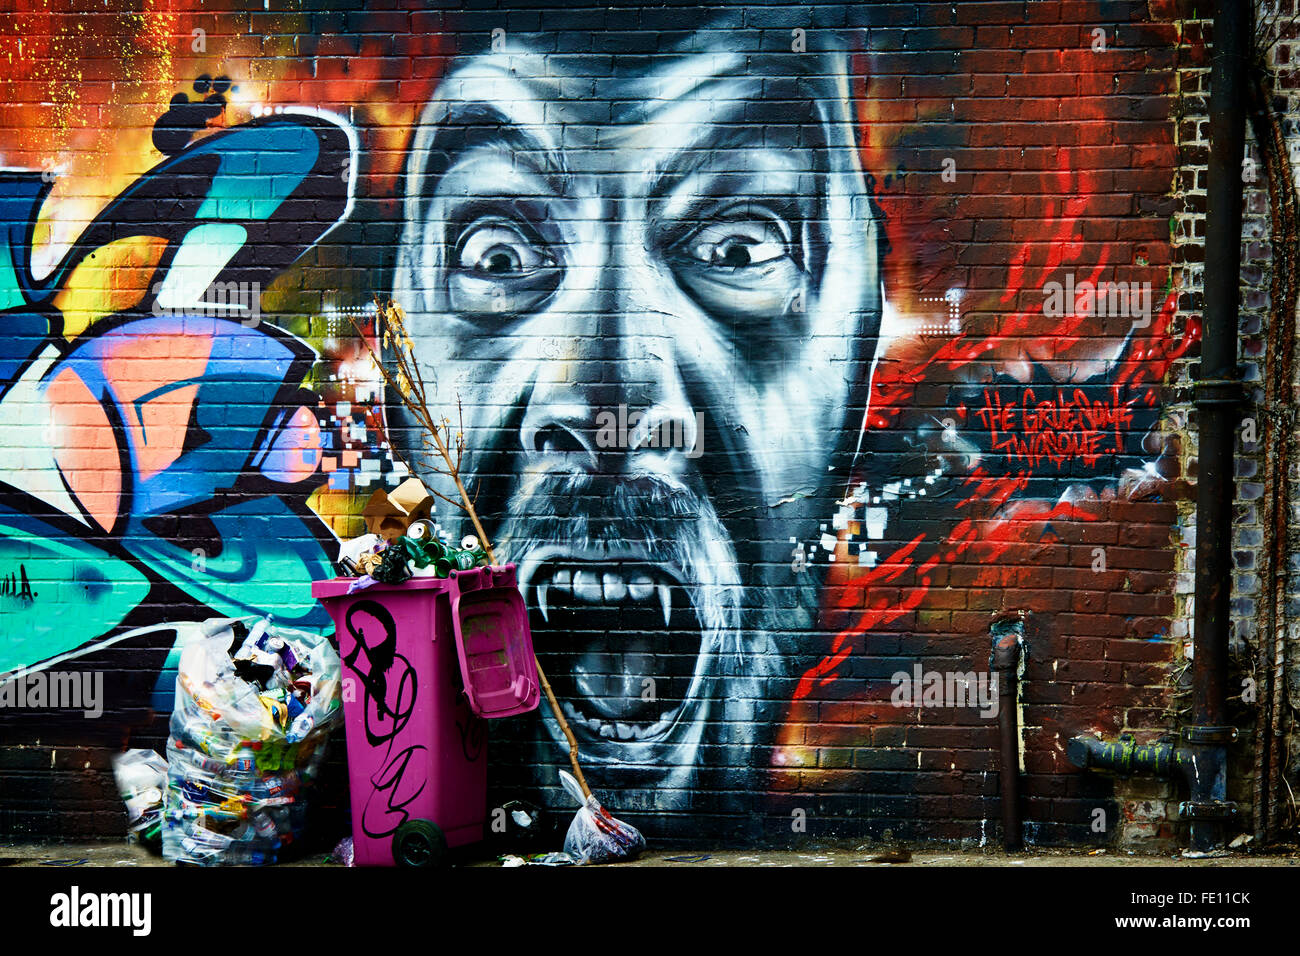 Highly colourful Graffiti design and face  with real life rubbish bins - Stock Image